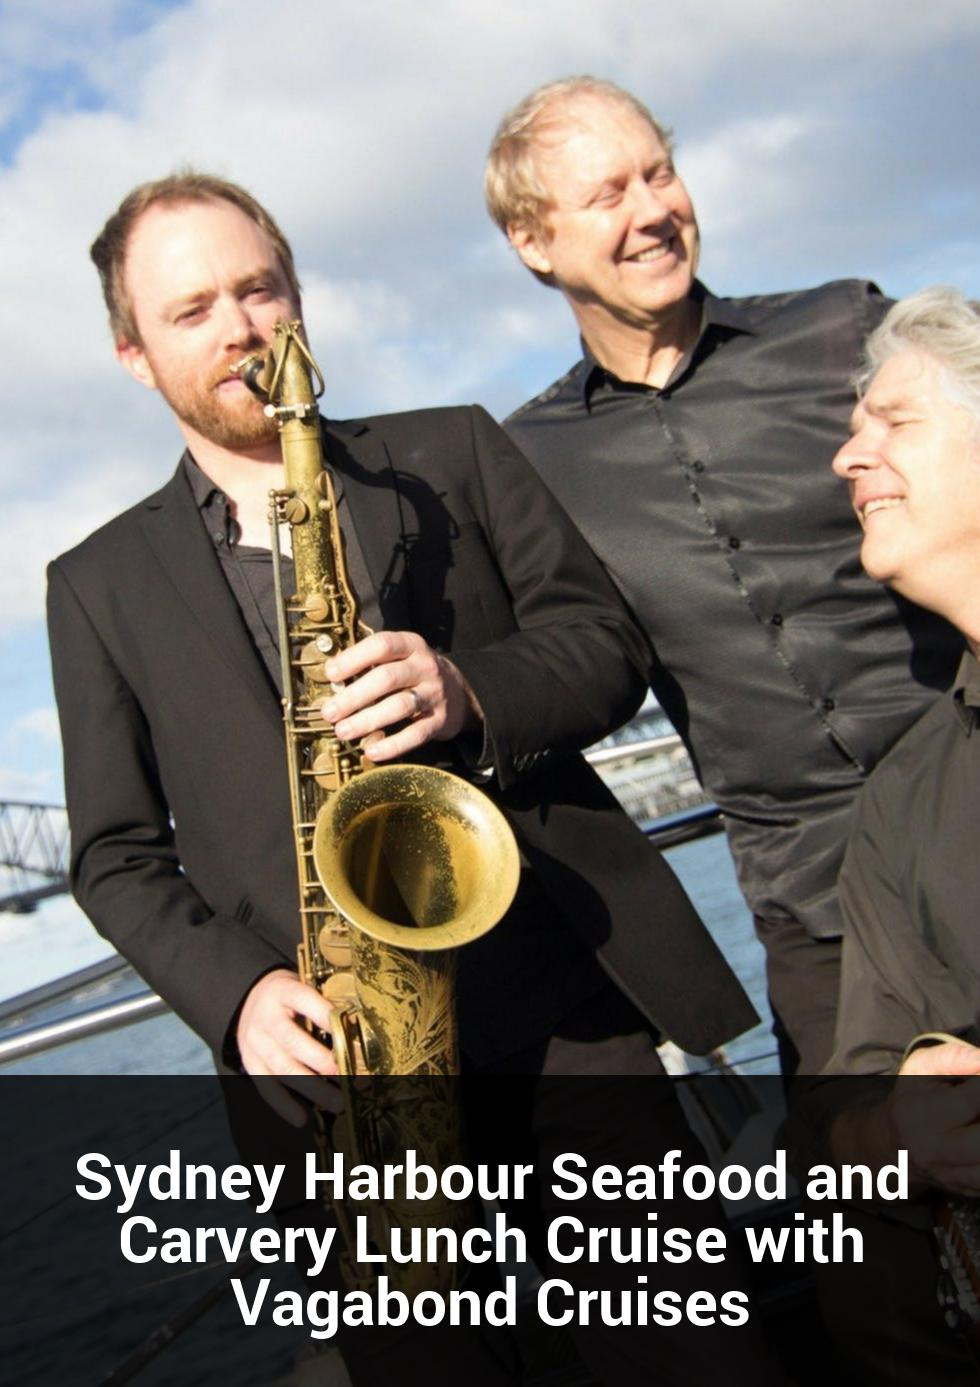 Sydney Harbour Seafood and Carvery Lunch Cruise with Vagabond Cruises at Vagabond Cruises